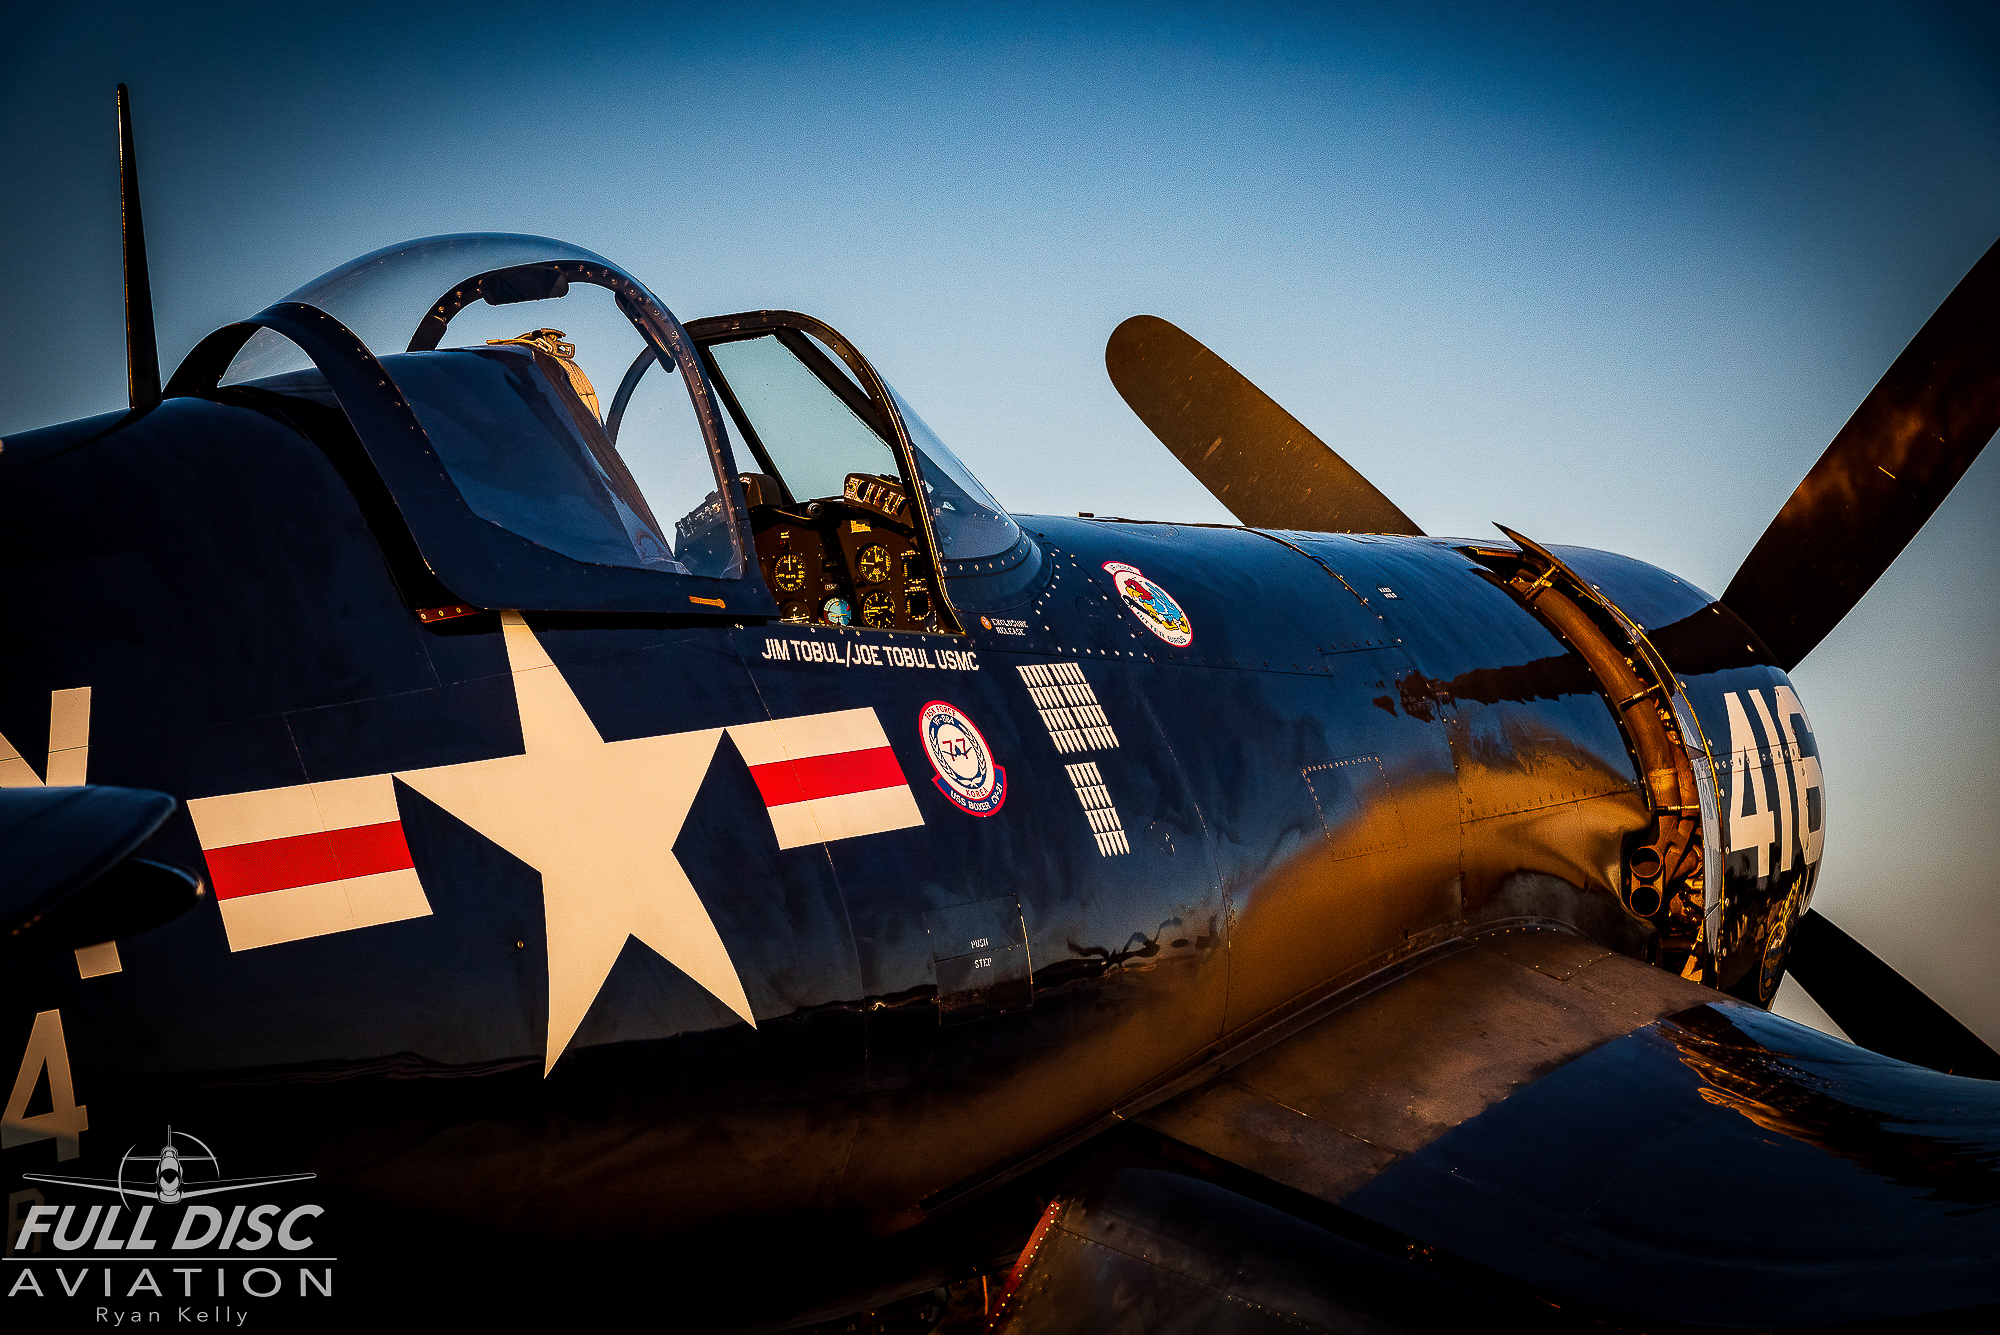 ClassOf45_FullDiscAviation_RyanKelly_August 01, 2019_04.jpg